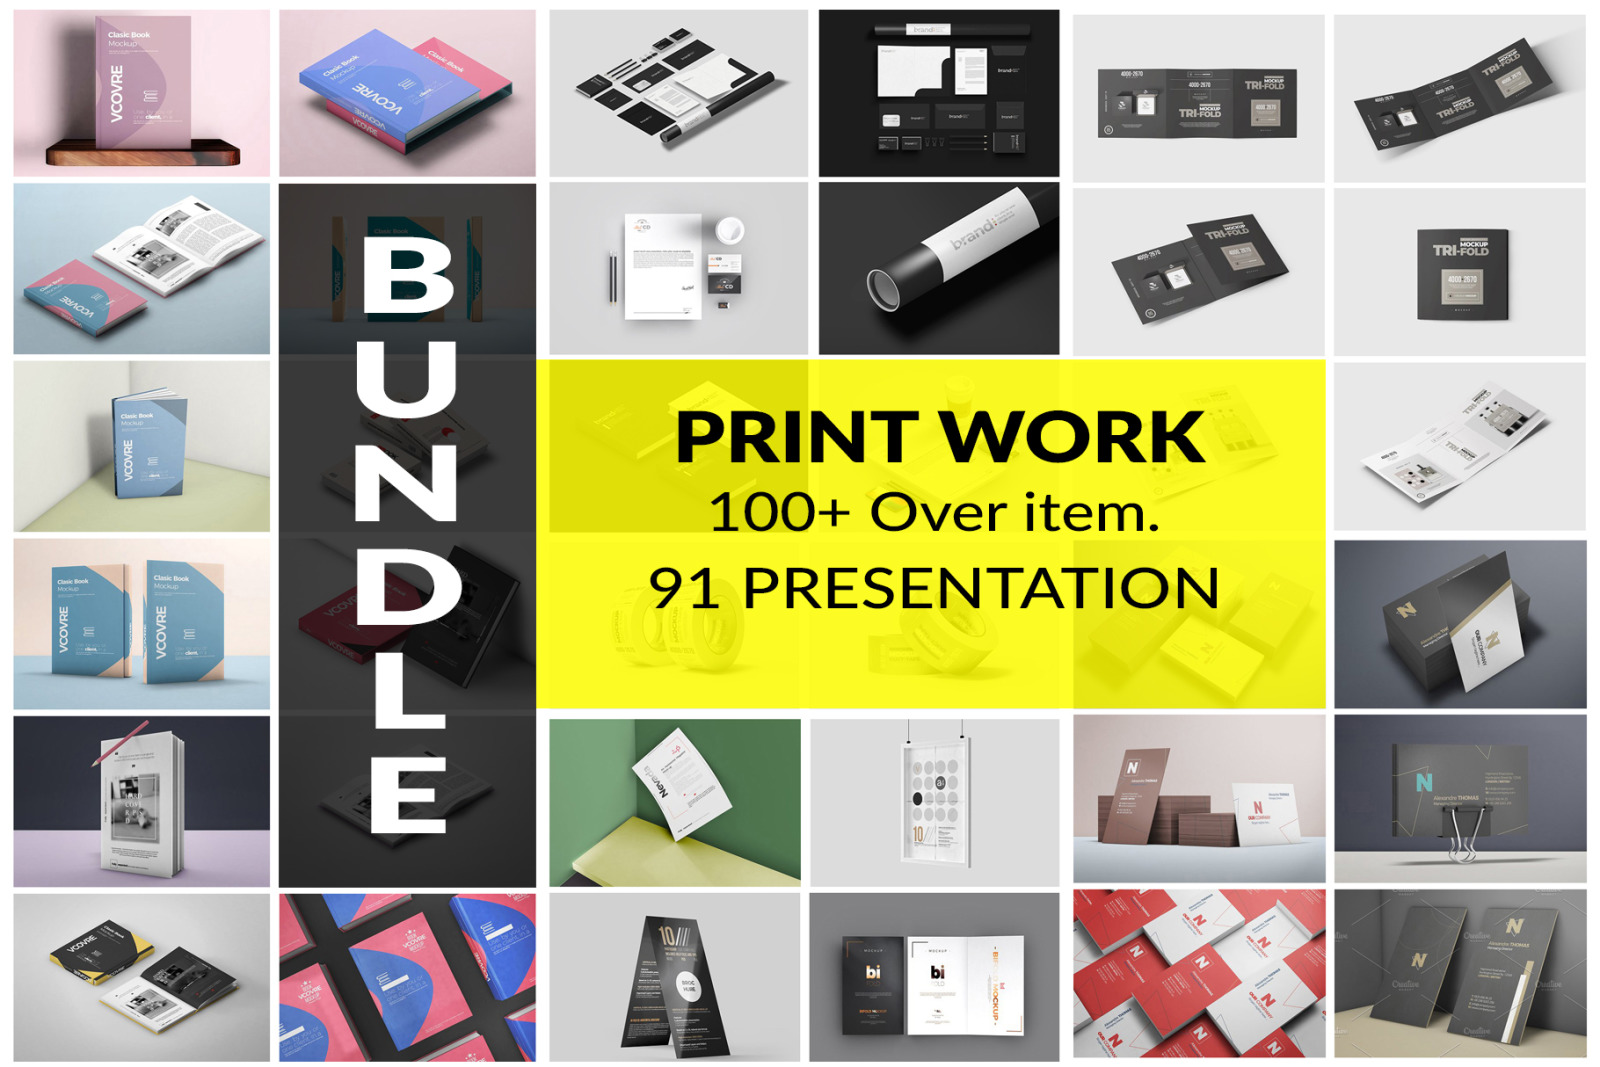 Download Print Work Bundle In Stationery Mockups On Yellow Images Creative Store PSD Mockup Templates